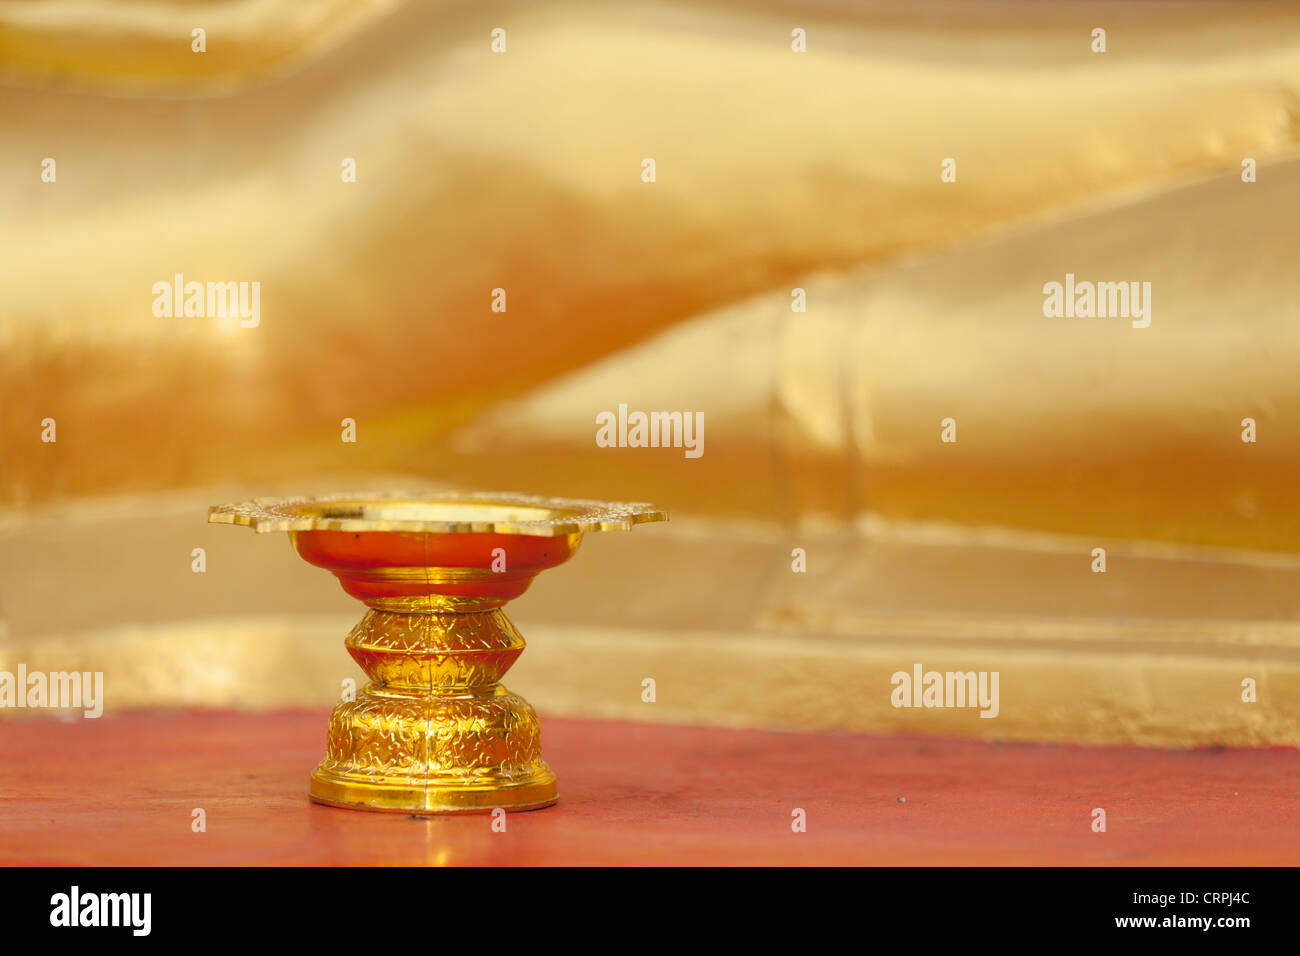 Golden cup containing water offering in buddhist temple, Thailand Stock Photo